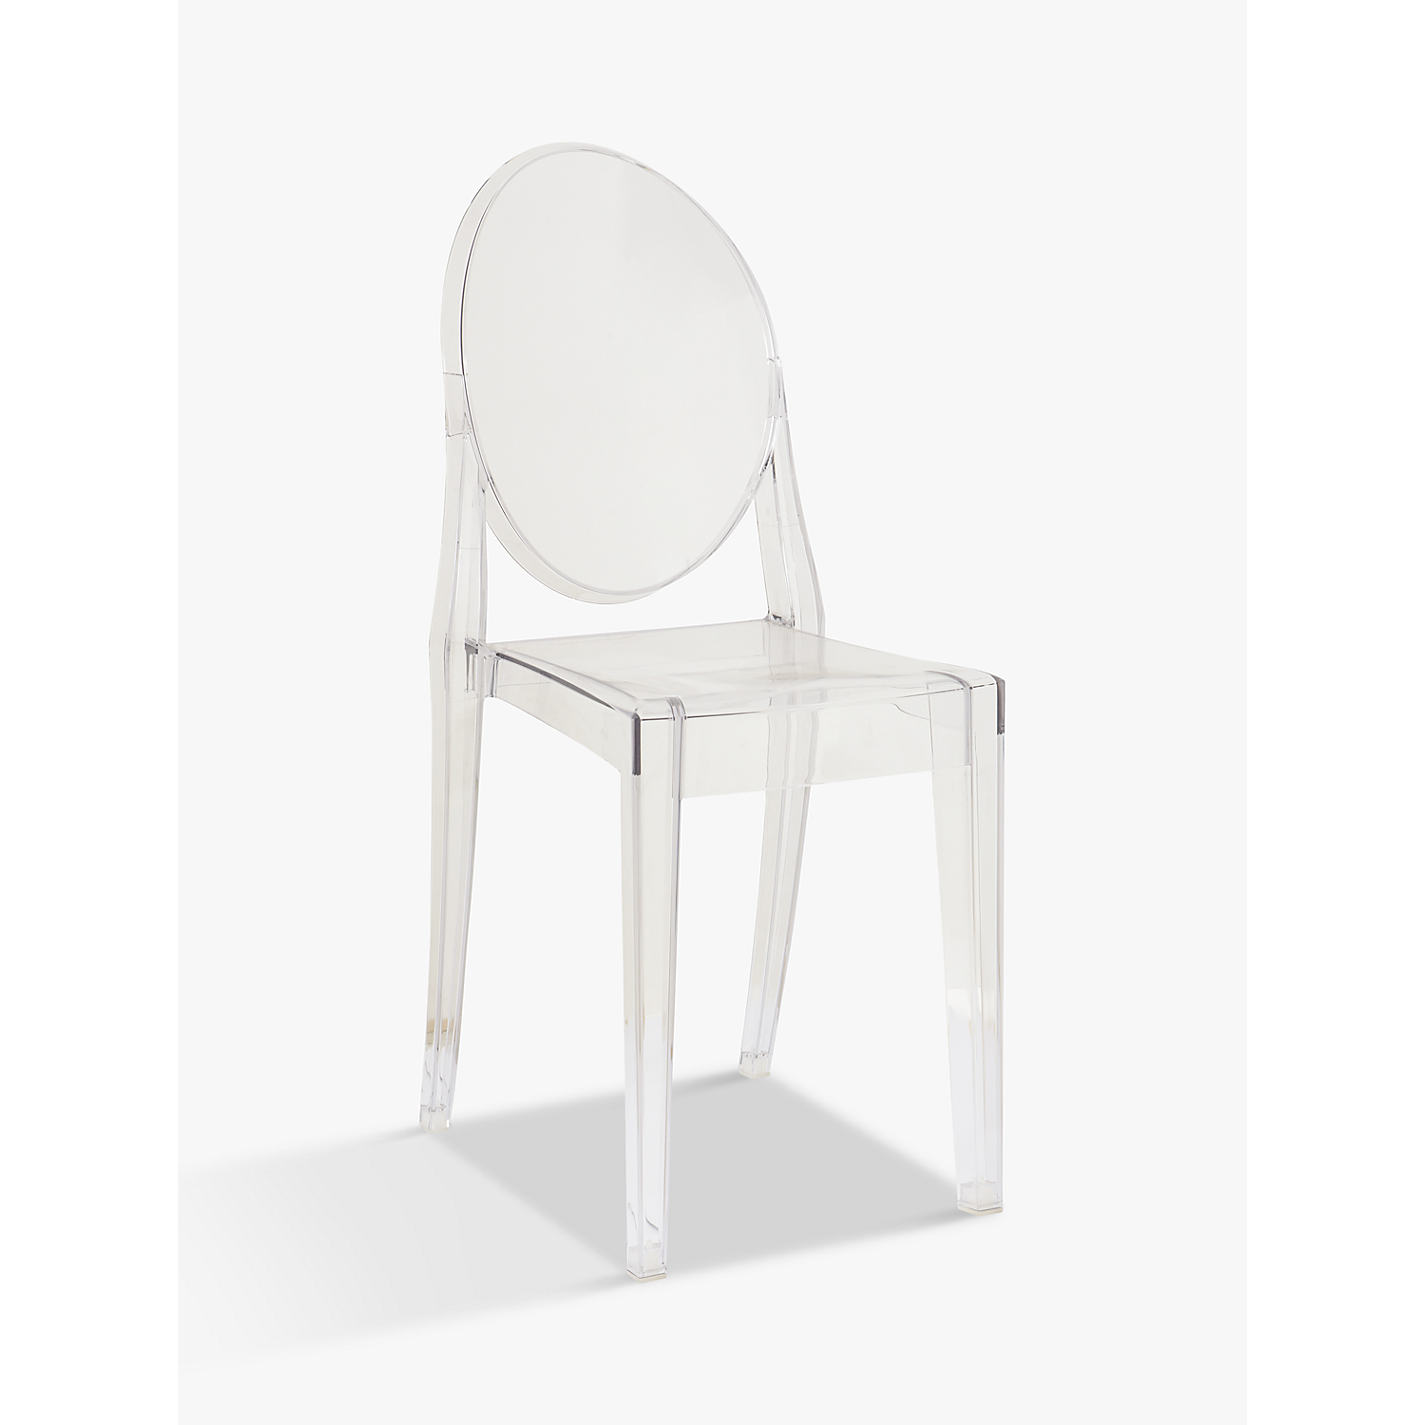 Buy Philippe Starck For Kartell Victoria Ghost Chair Online At  Johnlewis.com ...